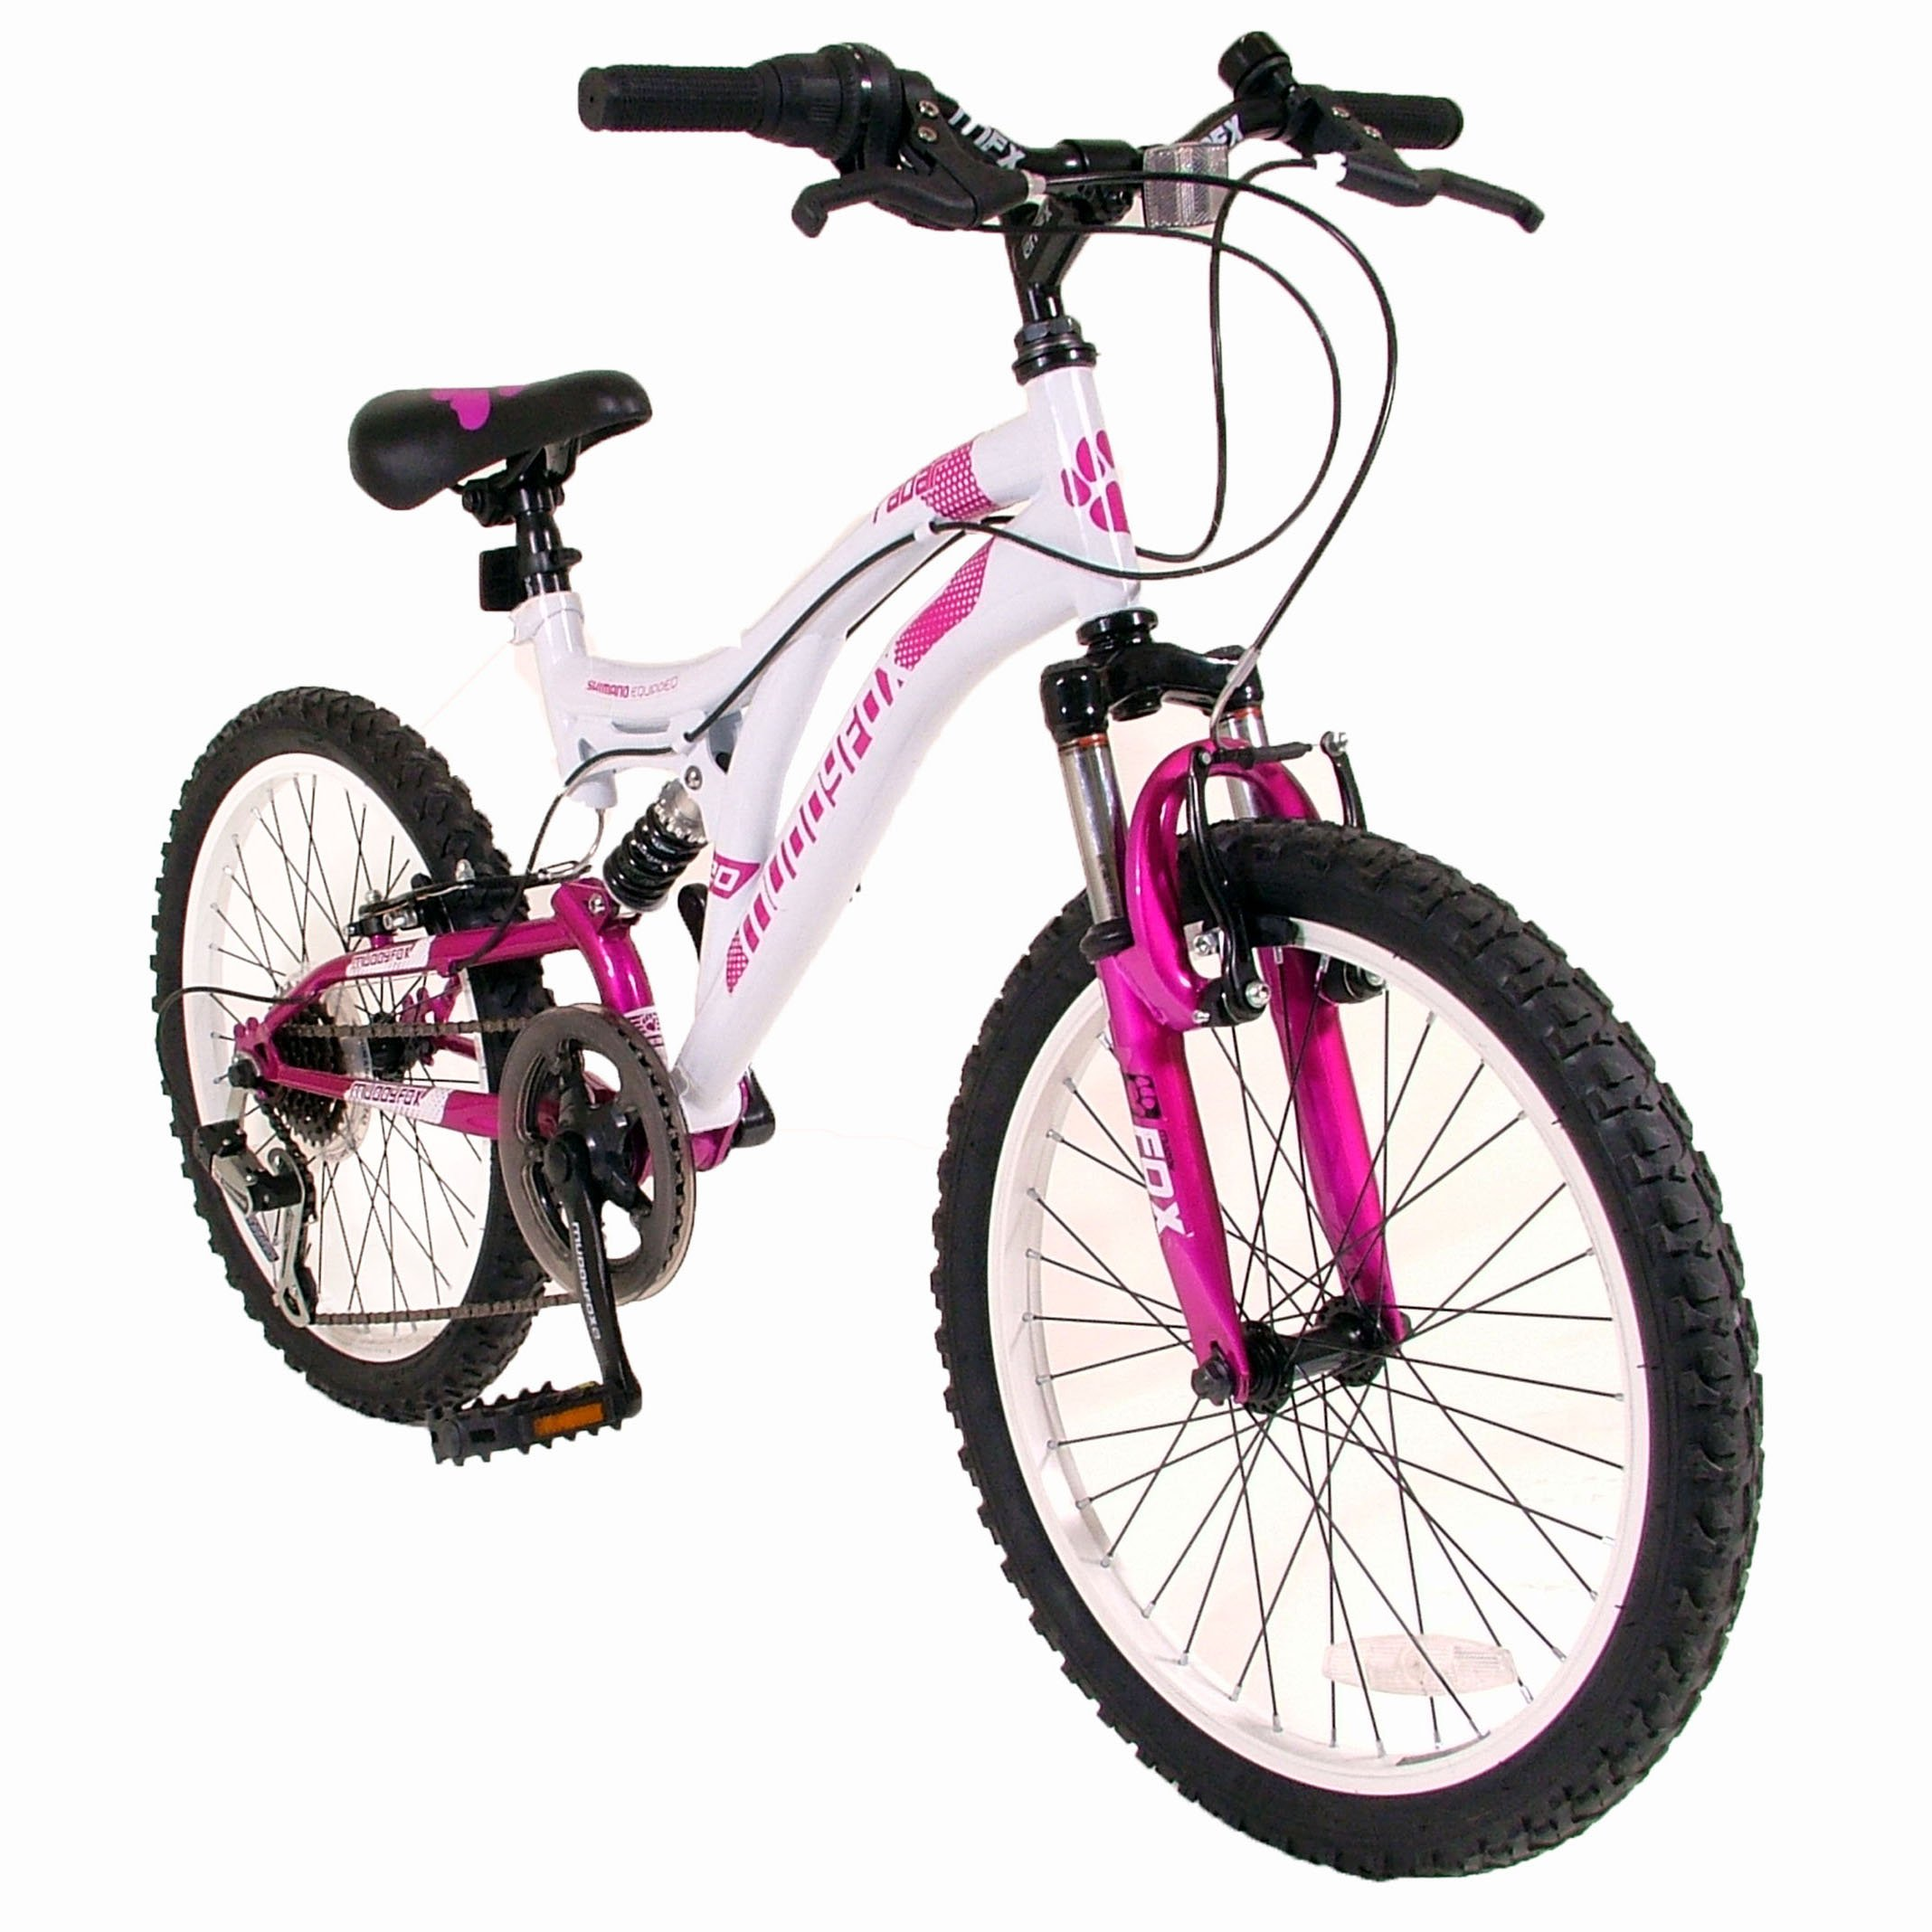 Boys Muddyfox Radar 20 Inch Wheels 13 Inch Frame Full Suspension Mountain Bike